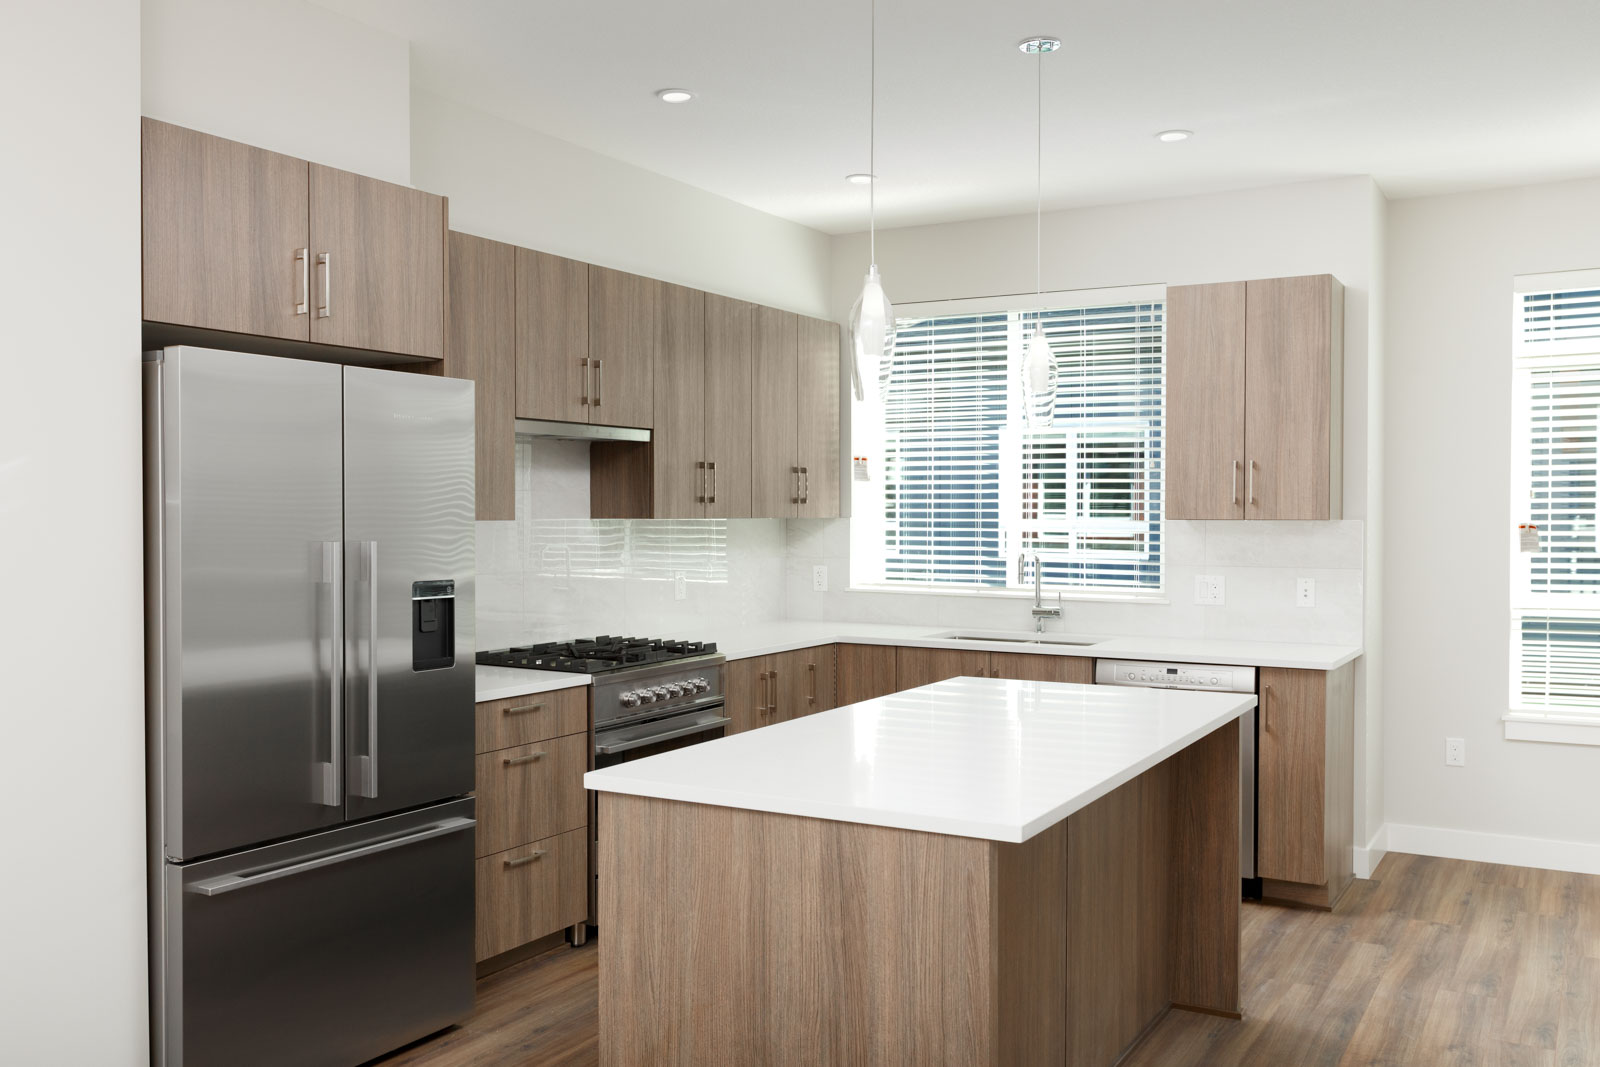 Kitchen with stainless steel appliances in luxury Richmond rental townhome.